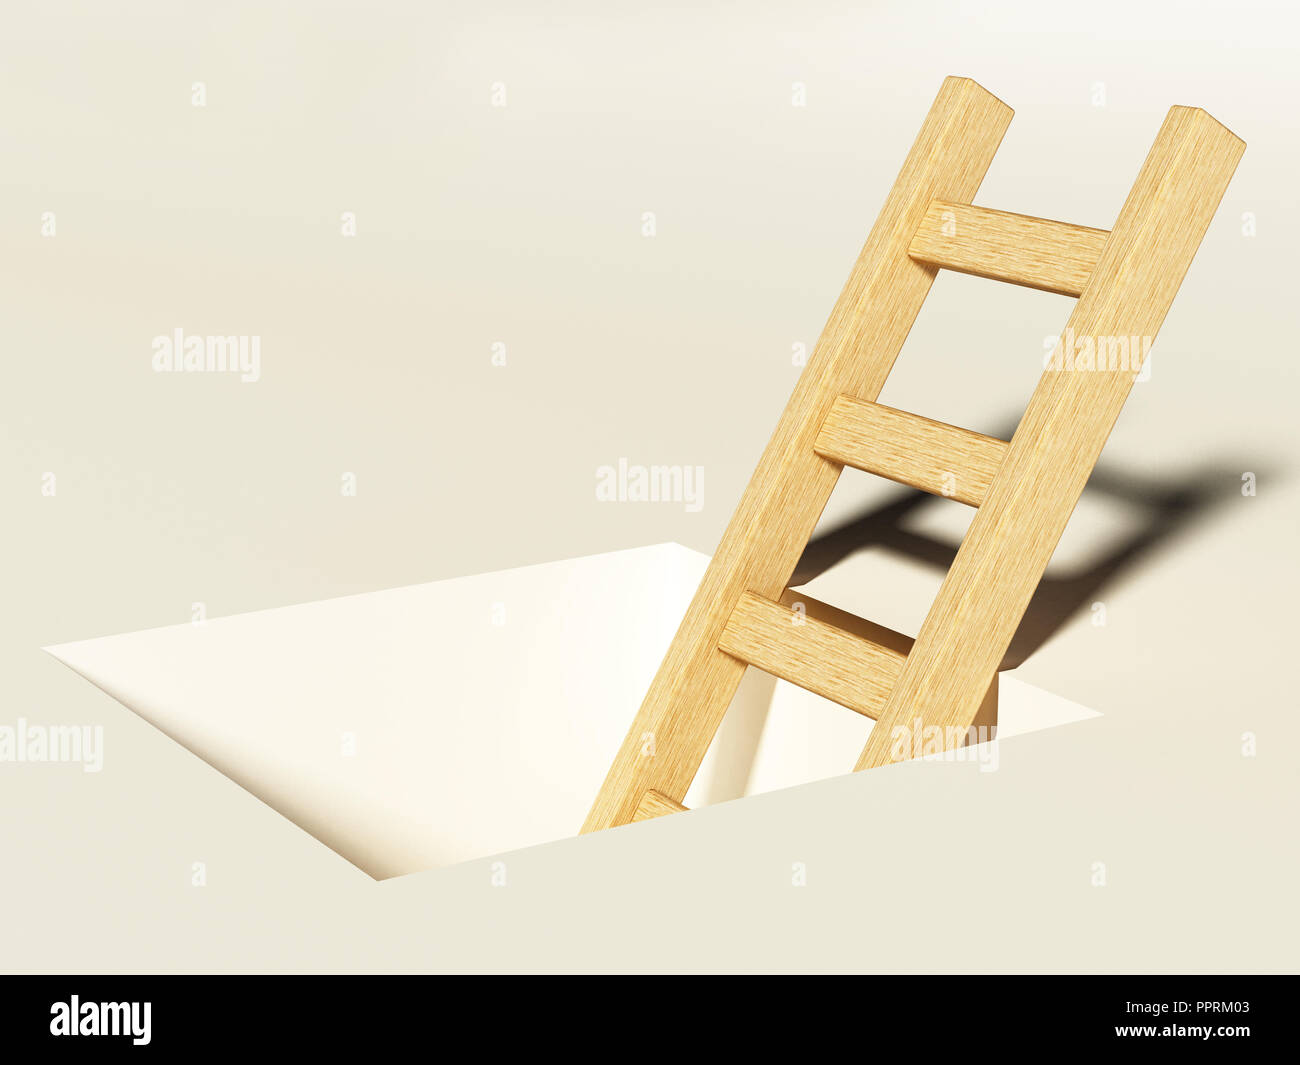 Wooden ladder rising above the square hole on the ground. - Stock Image